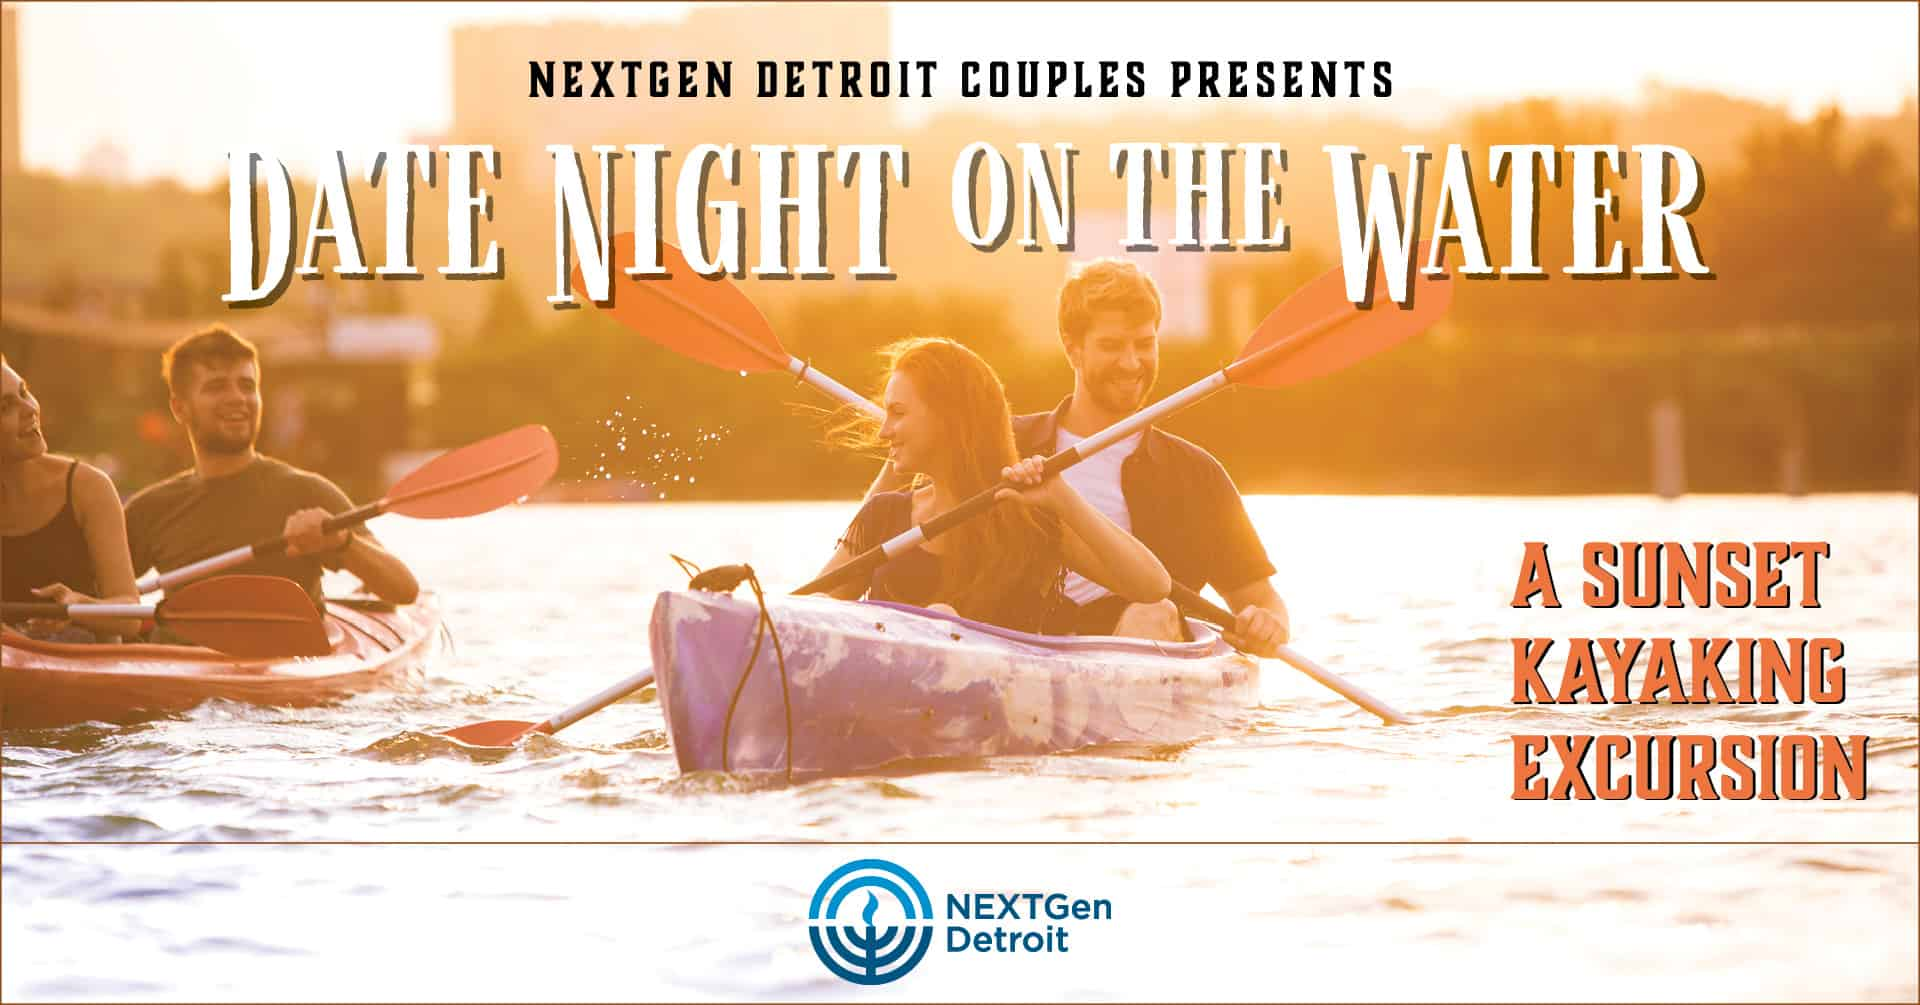 Date Night on the Water: A Sunset Kayaking Excursion